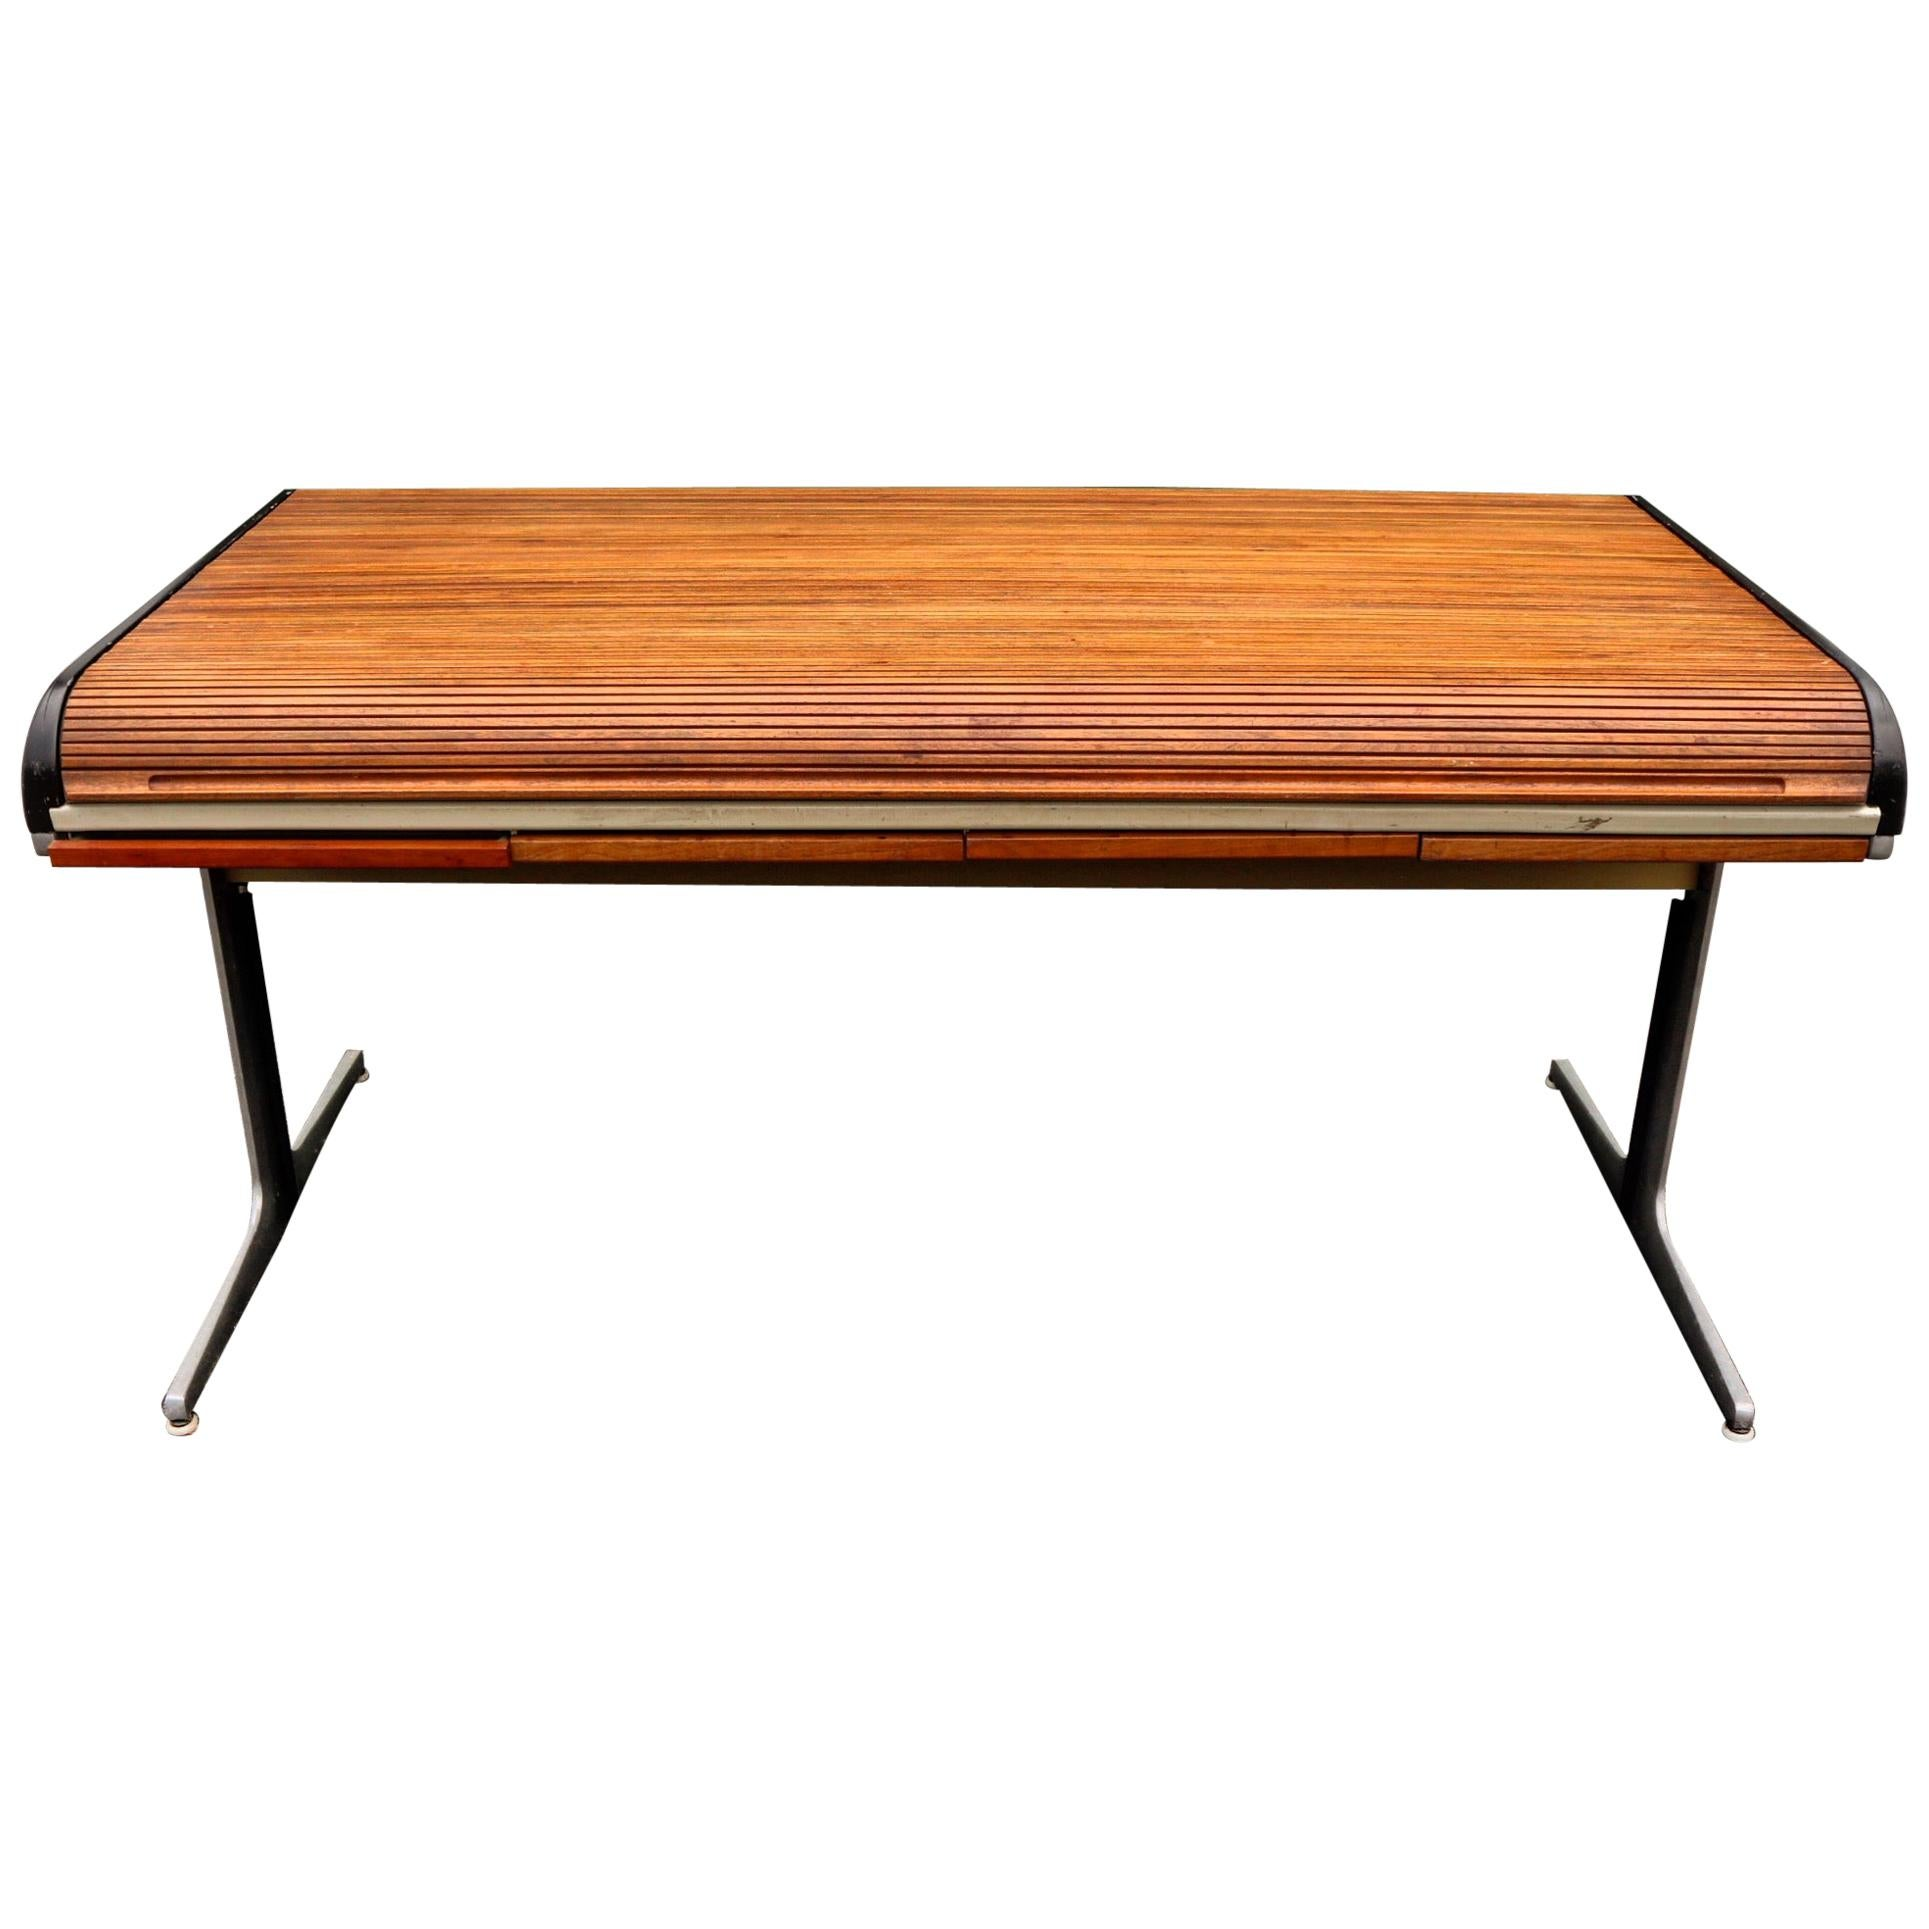 George Nelson for Herman Miller Action Office I Tambour Roll Top Office Desk